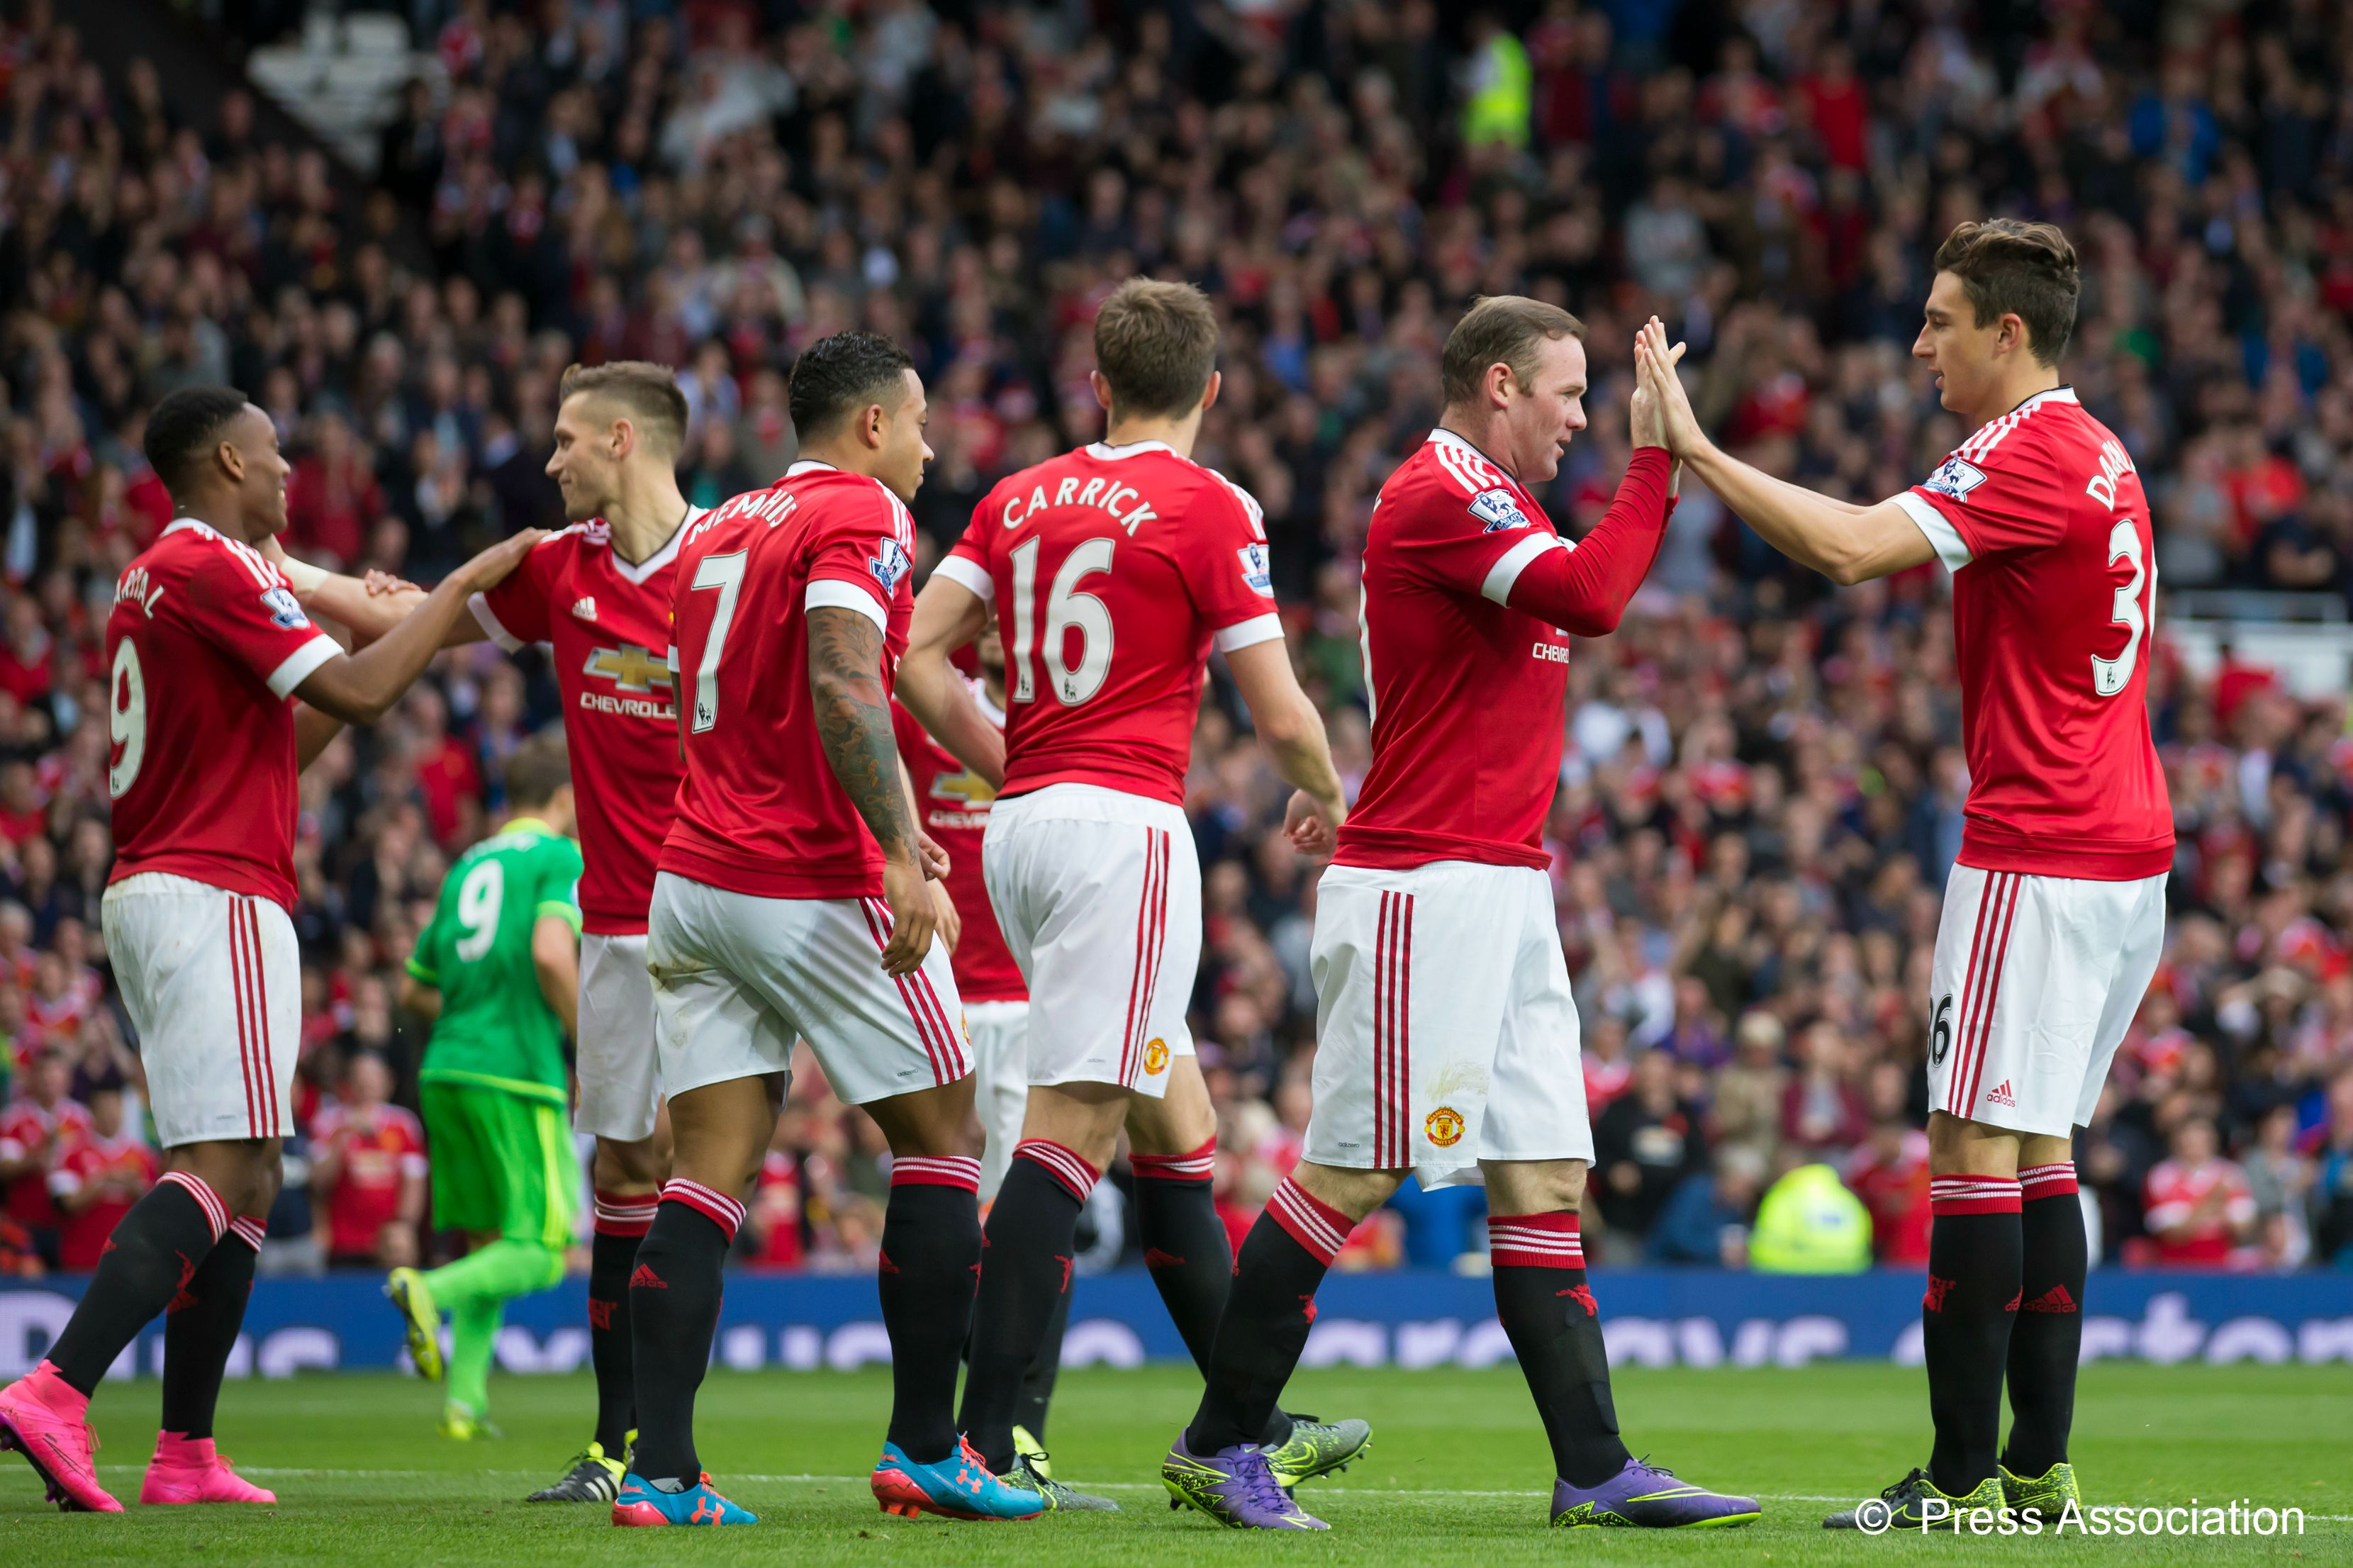 Manchester-Utd-celebrate-goal-v-Sunderland-26th-Sept-2015